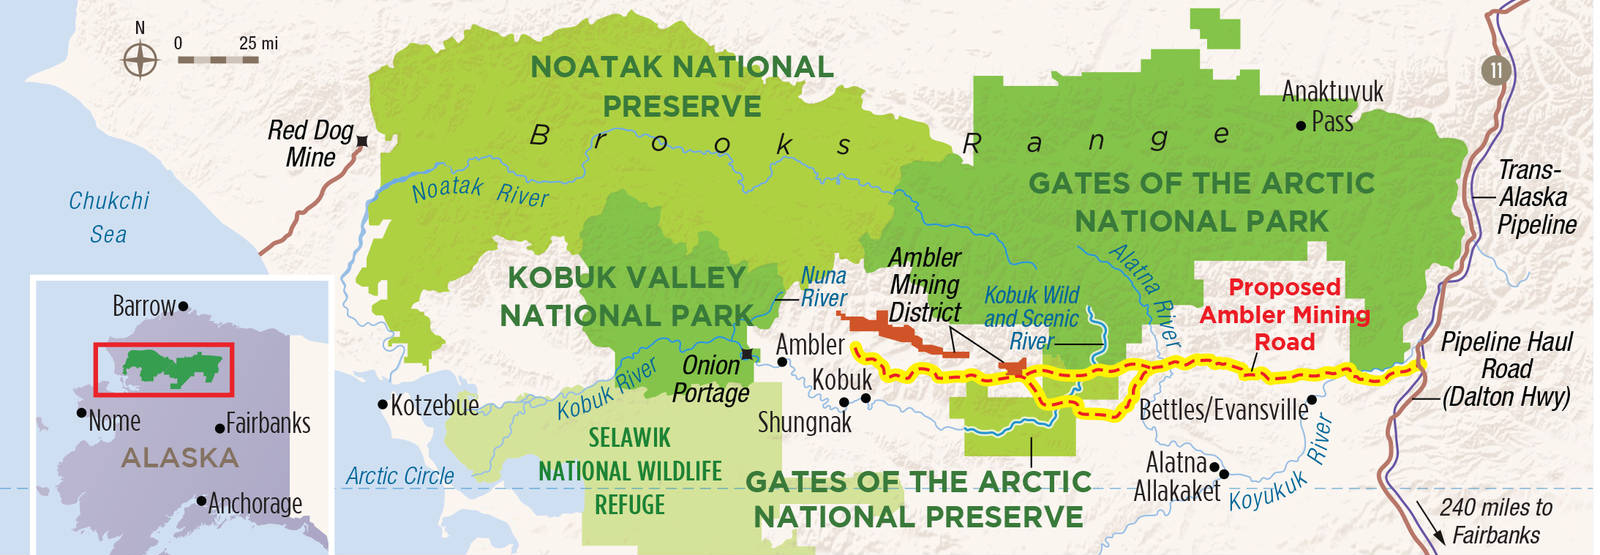 Protect Gates of the Arctic National Park & Preserve ...